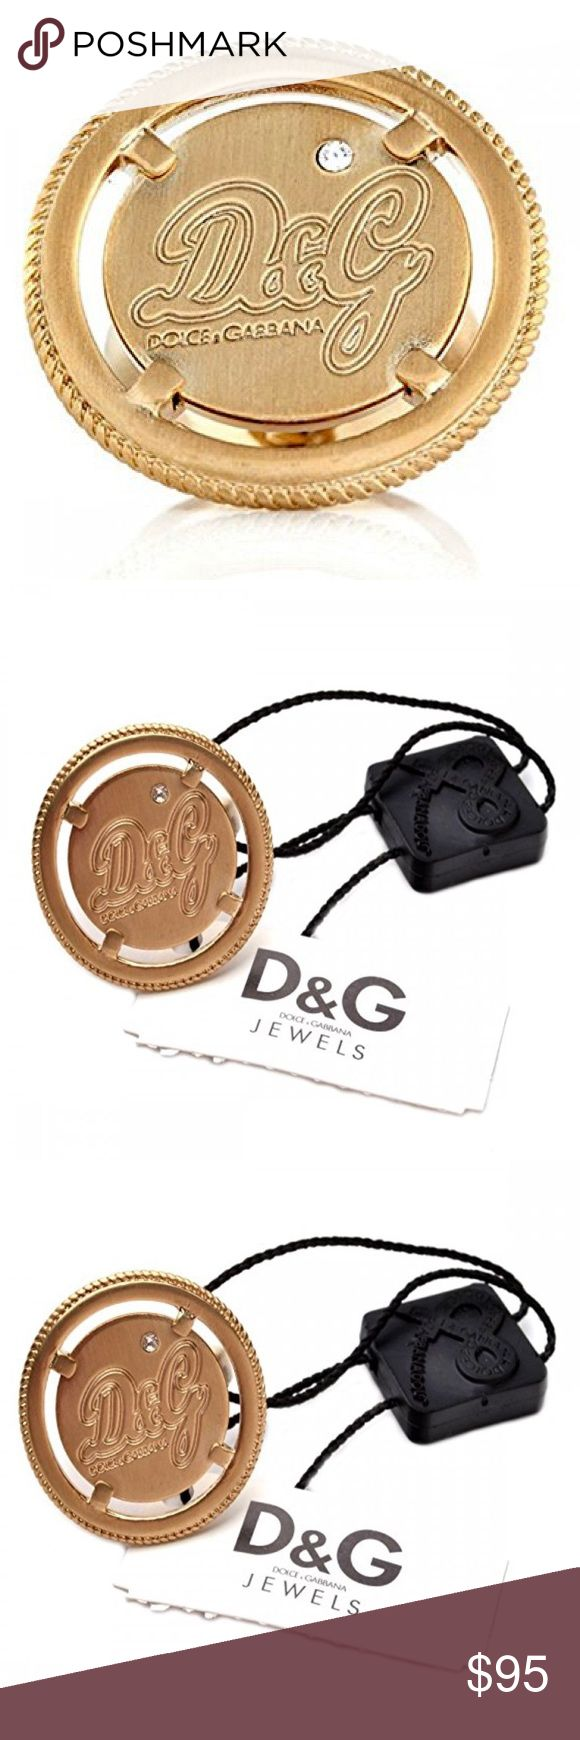 Dolce & Gabbana D&G Coin Ring w/ Swarovski Crystal Dolce & Gabbana D&G Jewels Ladies Gold Coin Ring with embedded Swarovski Crystal. Brand new. Comes with D&G Case & Authenticity Certificate. D&G Jewelry Rings